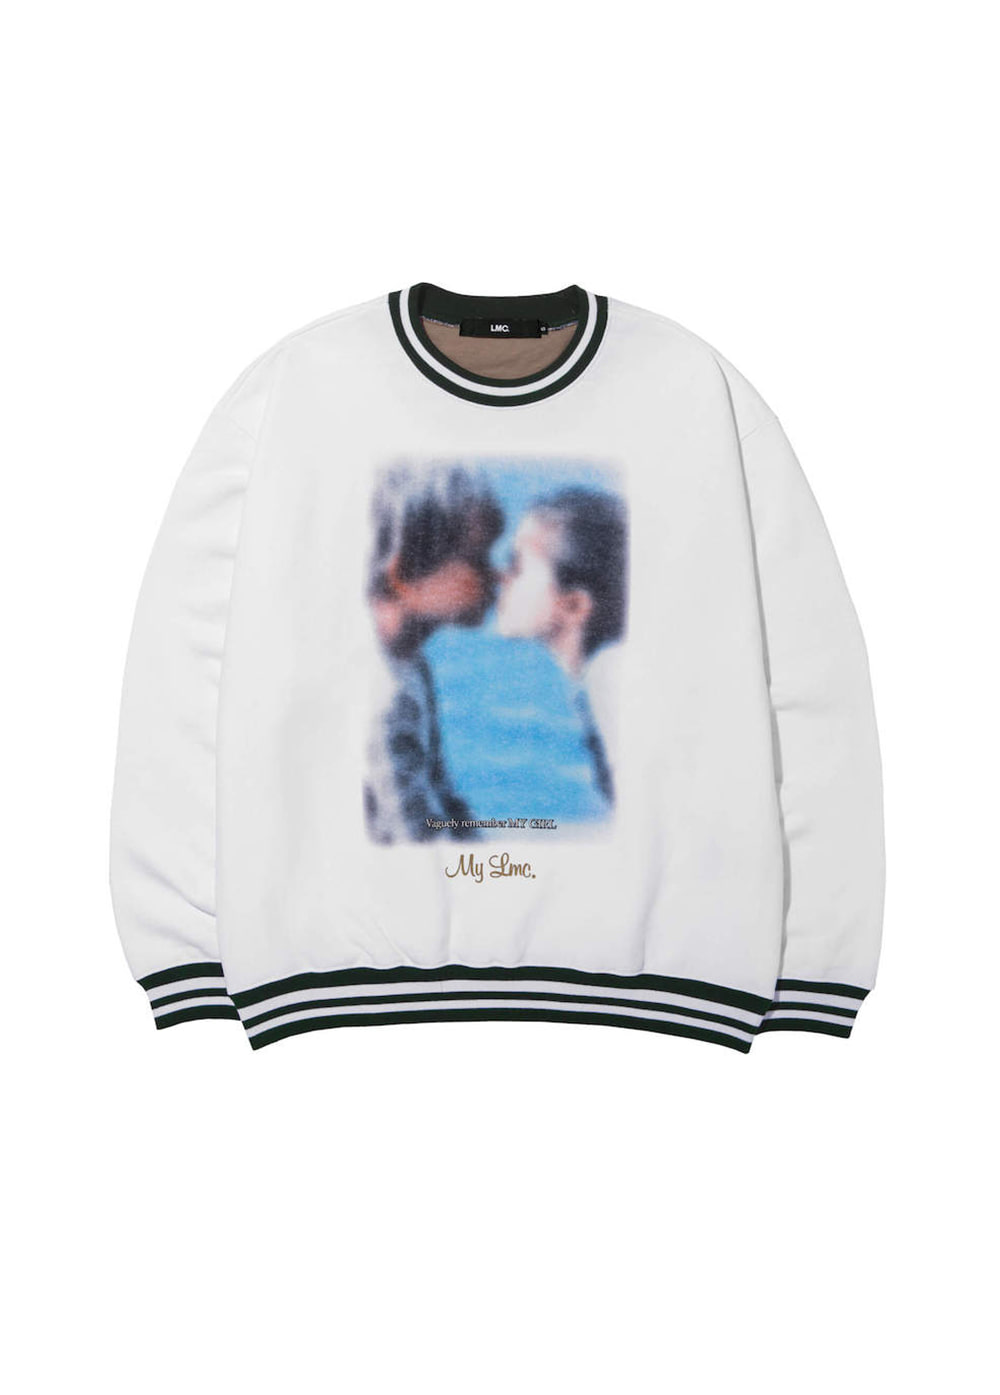 LMC CHILD SWEATSHIRT white